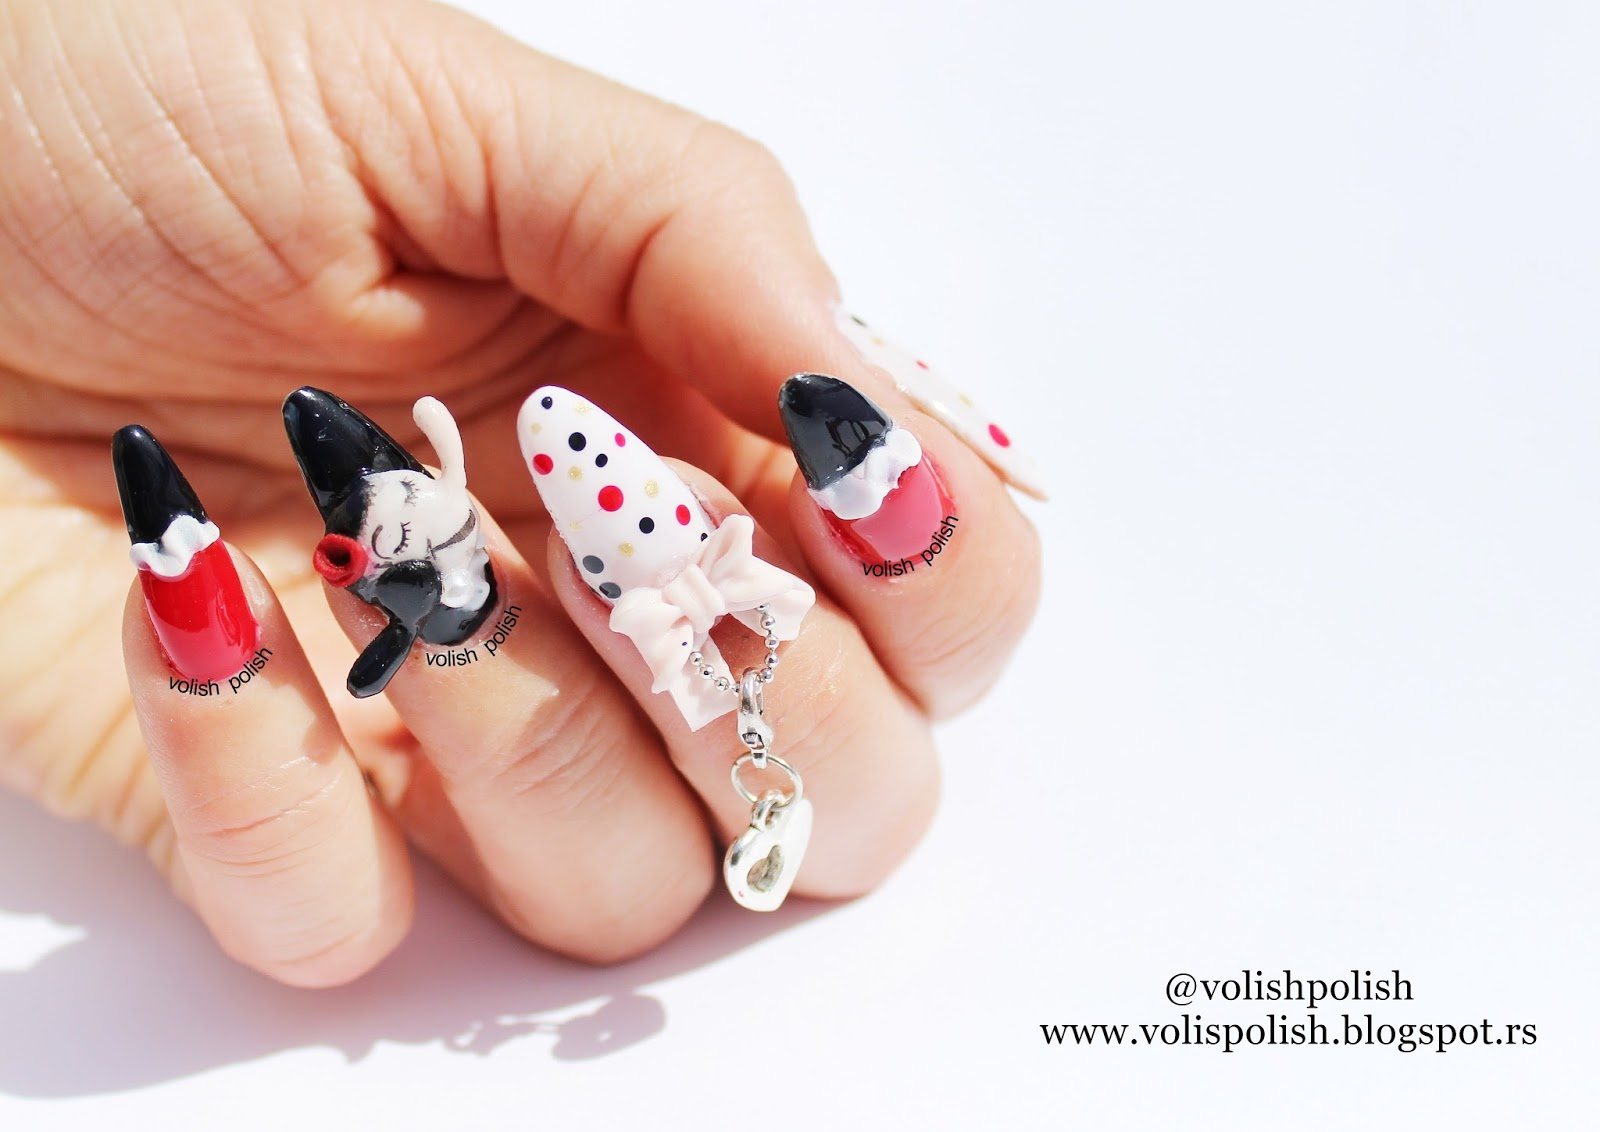 Volish polish cheap and chic nail art dizajn na akrilnim noktima i topped everything with an nsp super gloss top coat to give some extra shine to this cheap and chic nail art designlike moschino and olive oyl deserve prinsesfo Choice Image